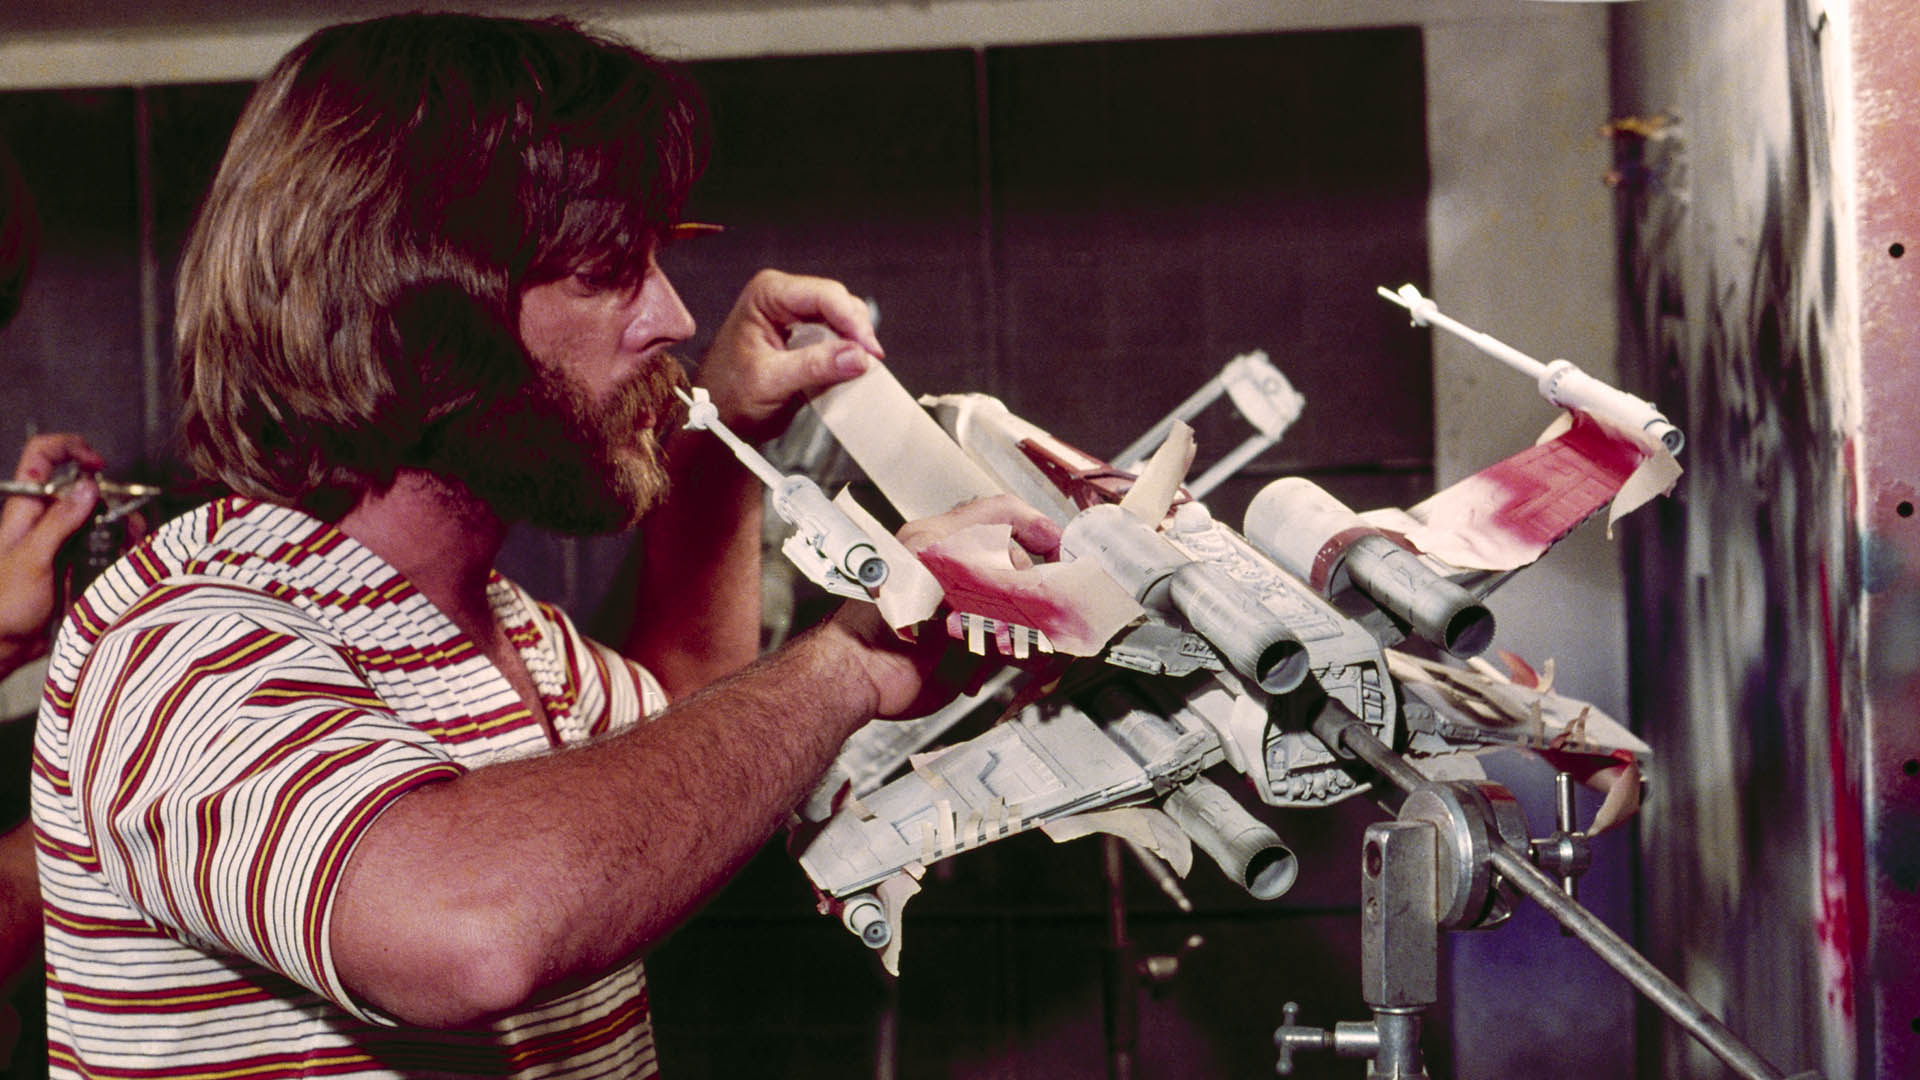 John Dykstra adds the finishing touches to an X-wing fighter (image: LucasFilm).